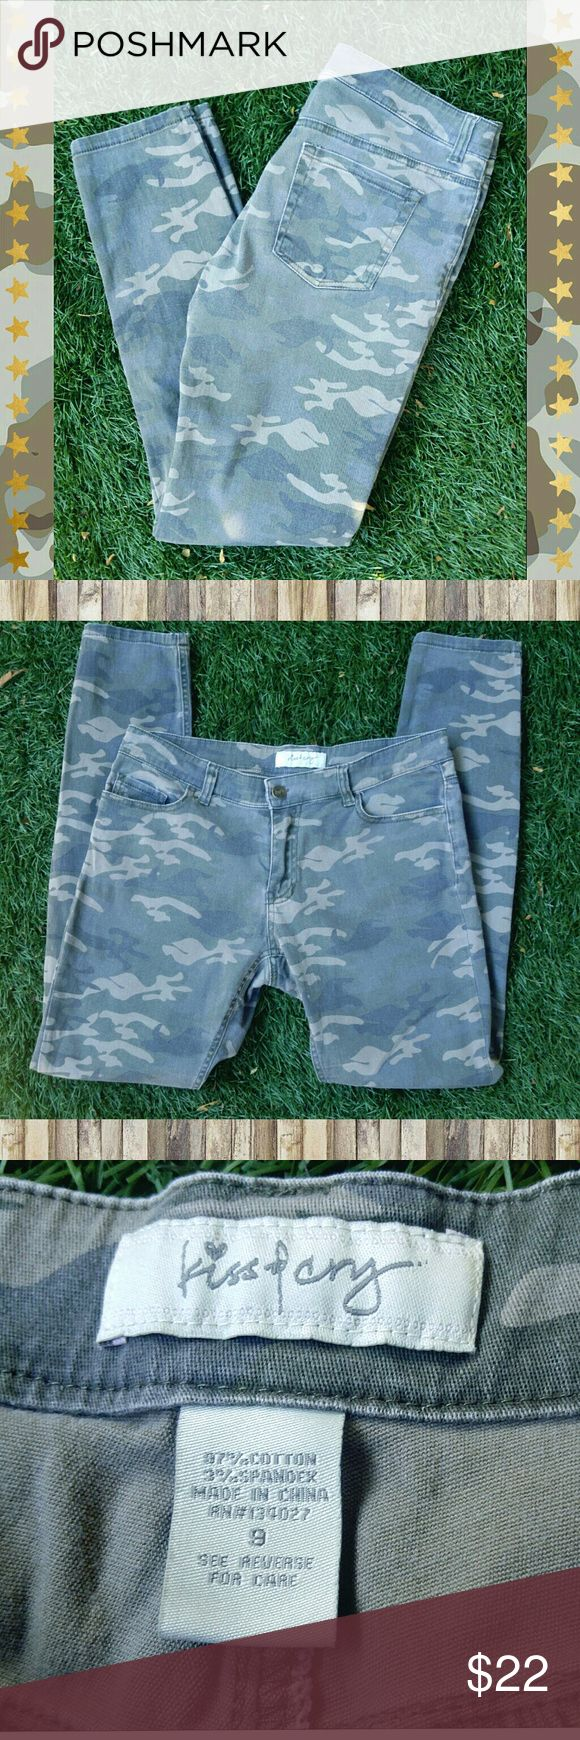 Camo Skinny Jeans Camouflage skinny jeans, brand is Kiss & Cry. Very stretchy, size 9. Colors are army green/khaki/grayish. Smoke free home, offers welcome.  #camojeans #camoleggings #camouflage Kiss & Cry Jeans Skinny